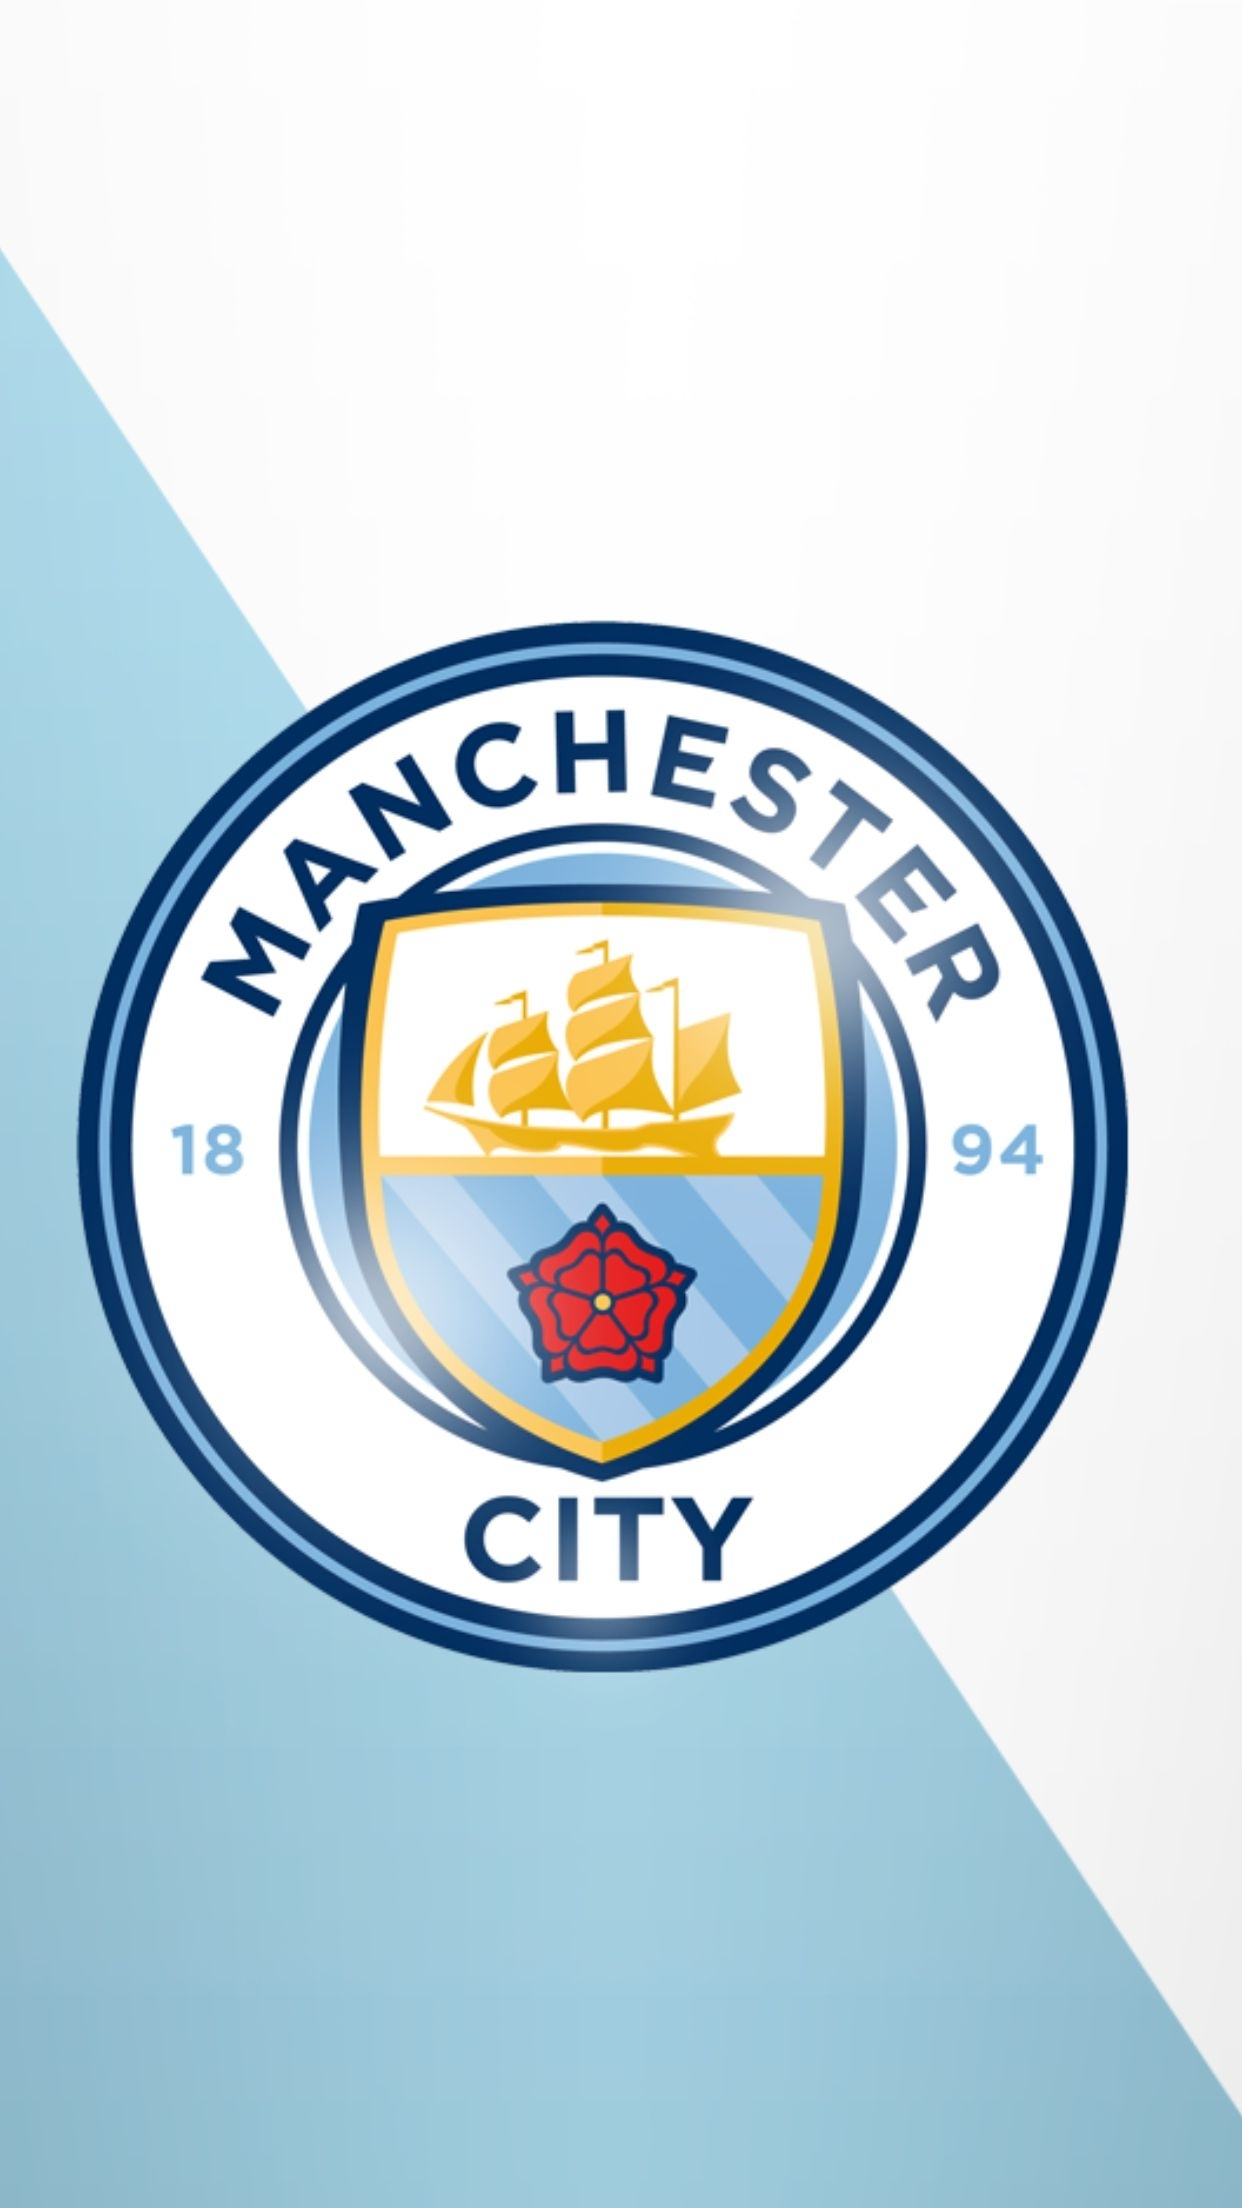 new manchester city iphone ipad wallpaper #mcfc #manchester | s